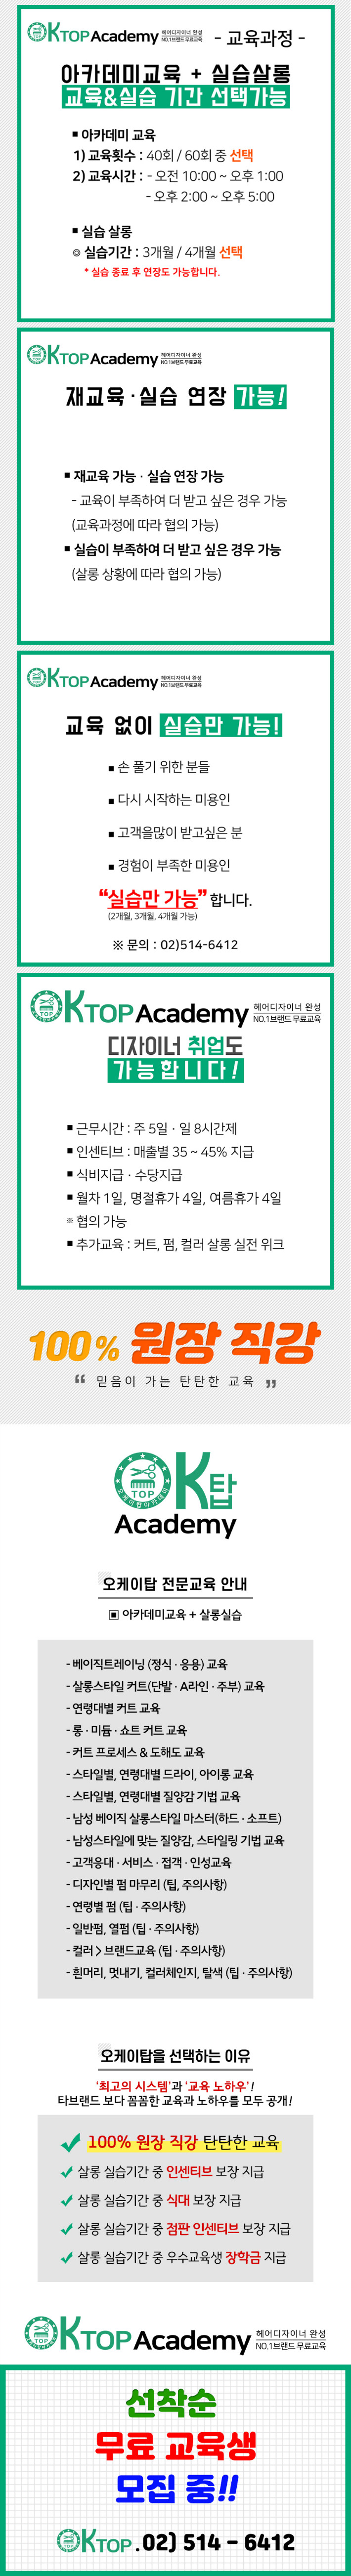 (200413) OK탑 ad page - 2-2.jpg